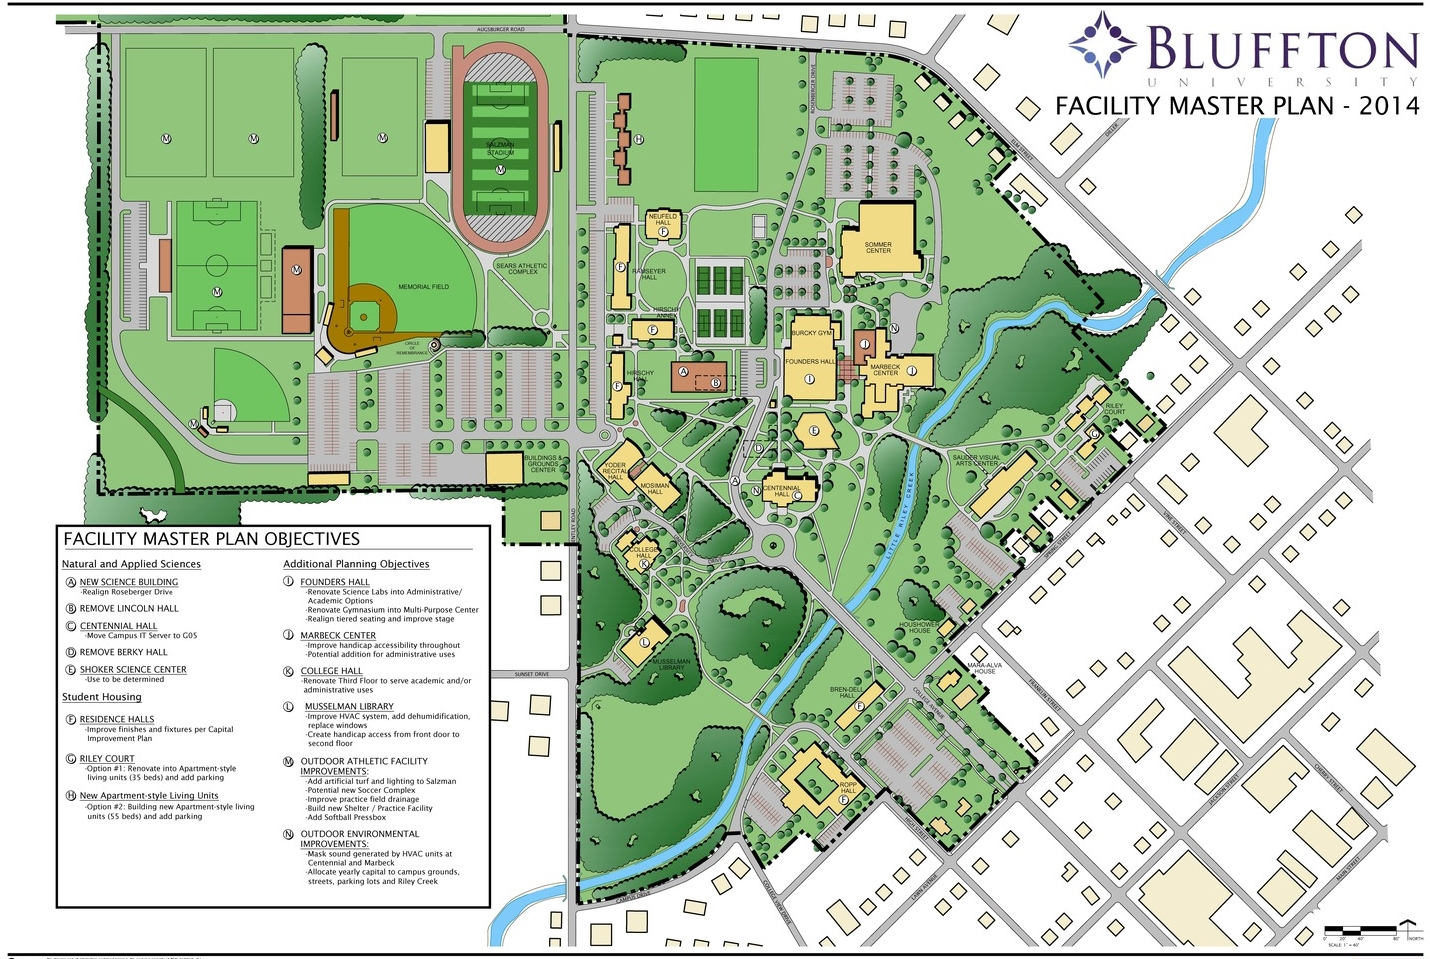 www.rcmarchitects.com - bluffton university - campus master plan (1)